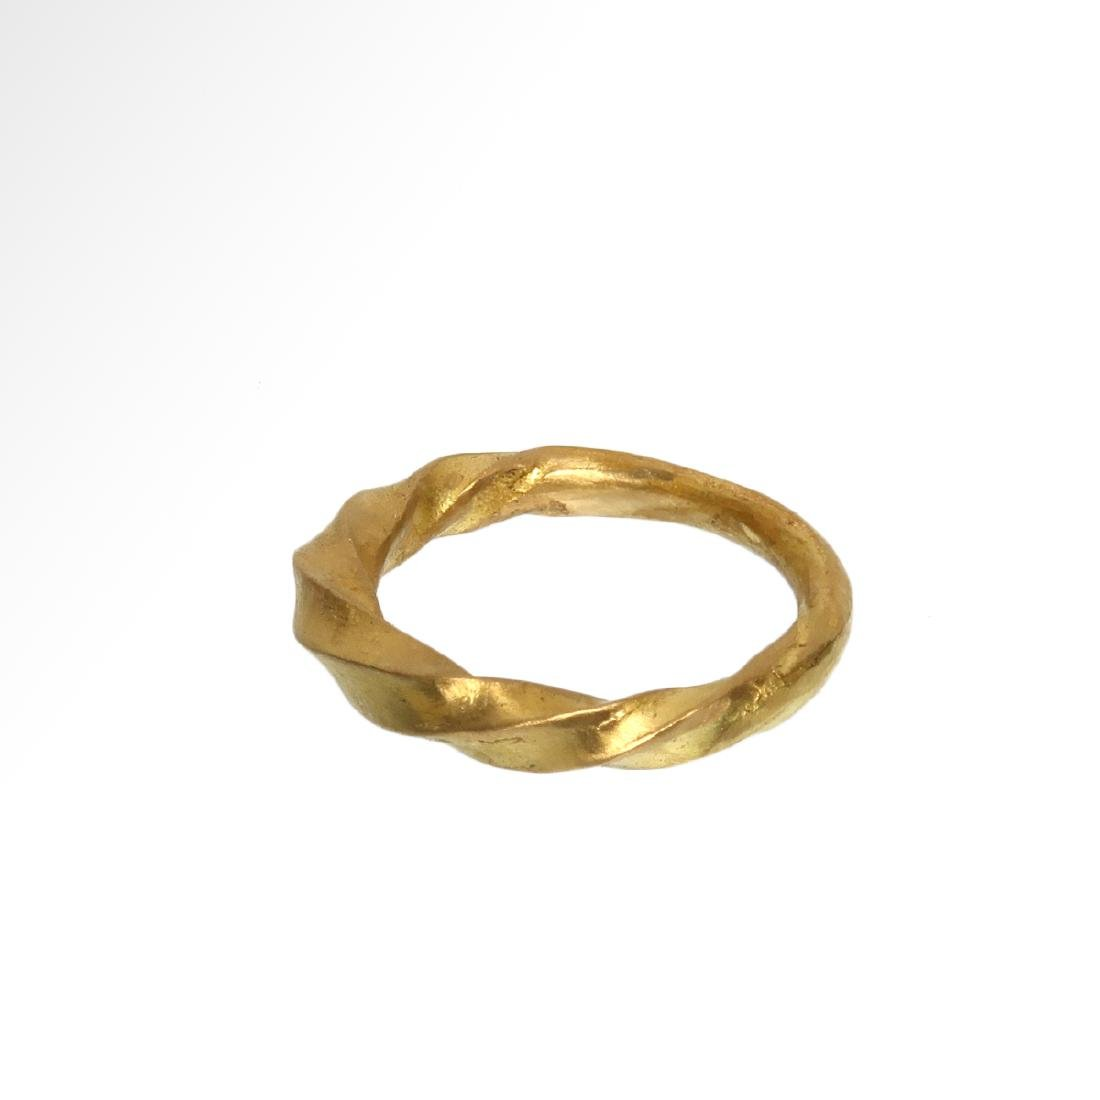 Viking Solid Gold Ring, c. 11th Century A.D. - 3